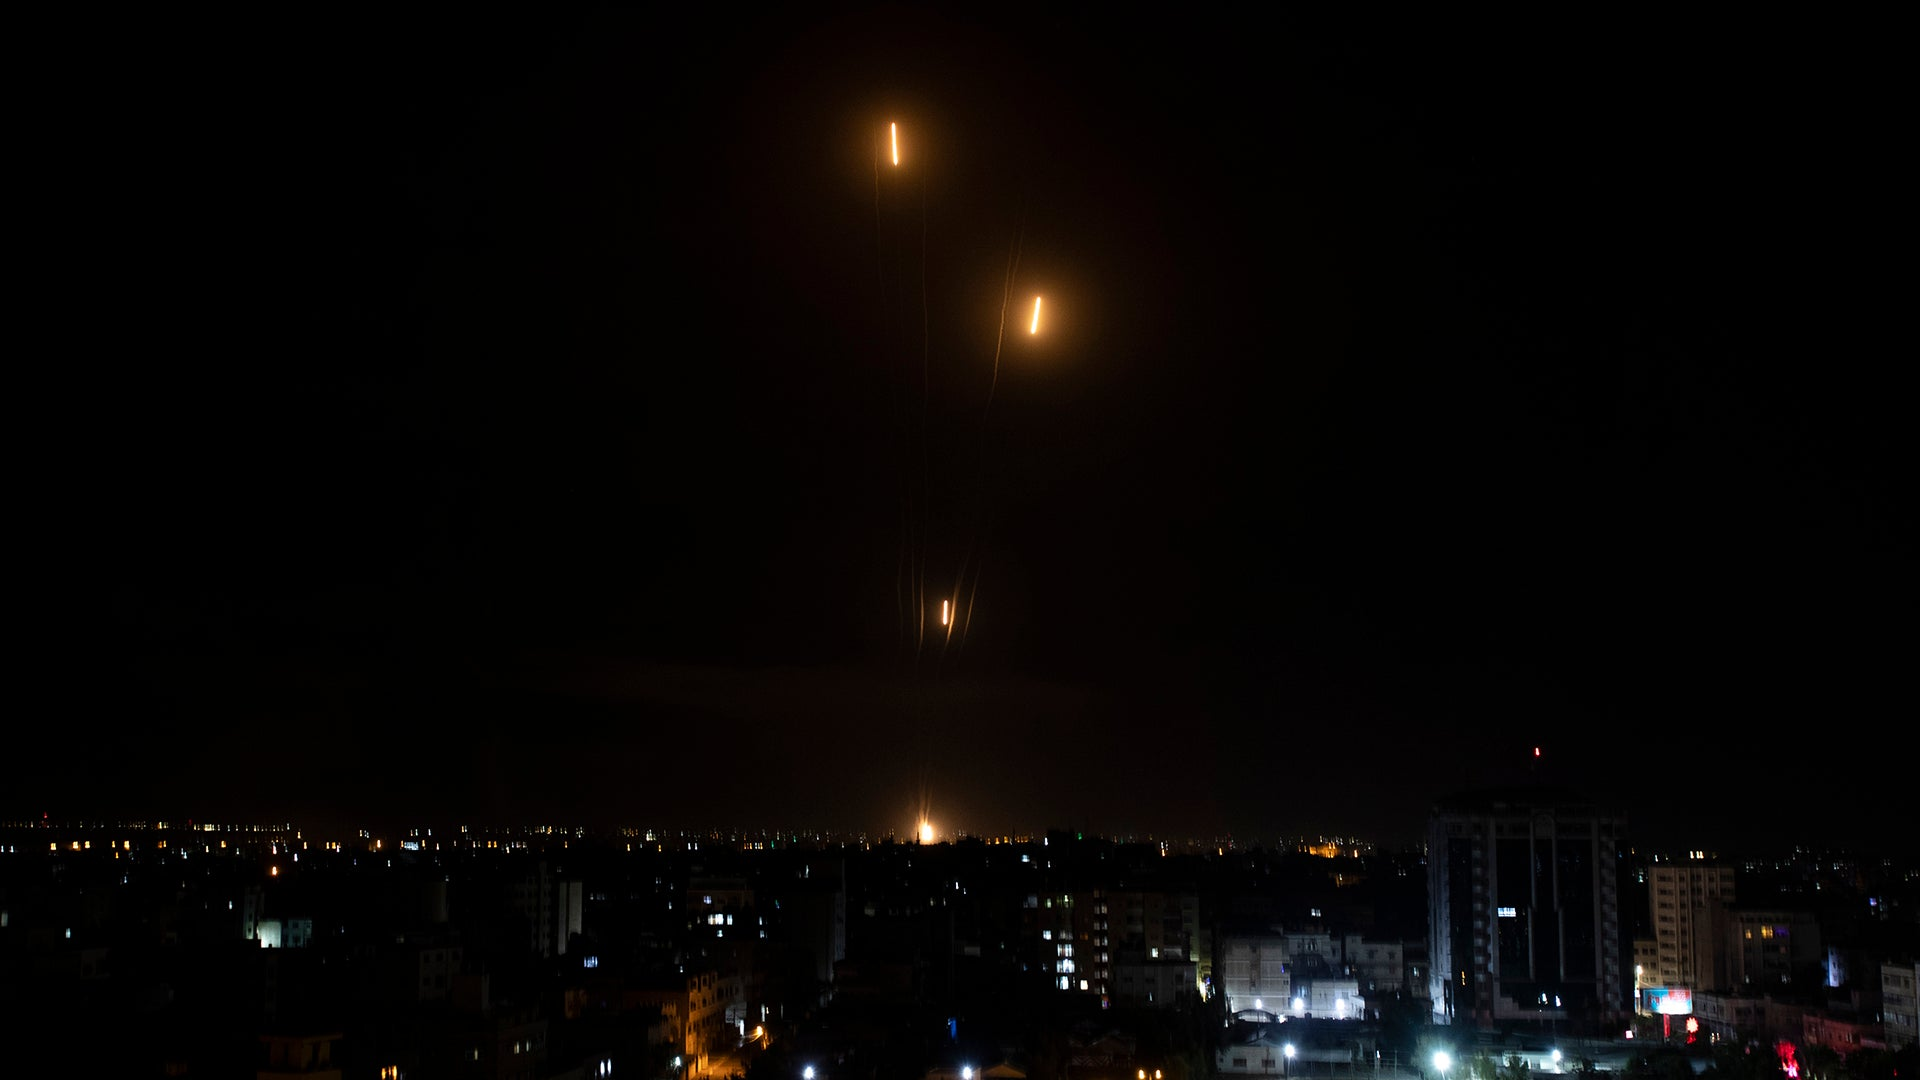 Watch Israel's 'Iron Dome' fend off massive rocket attacks